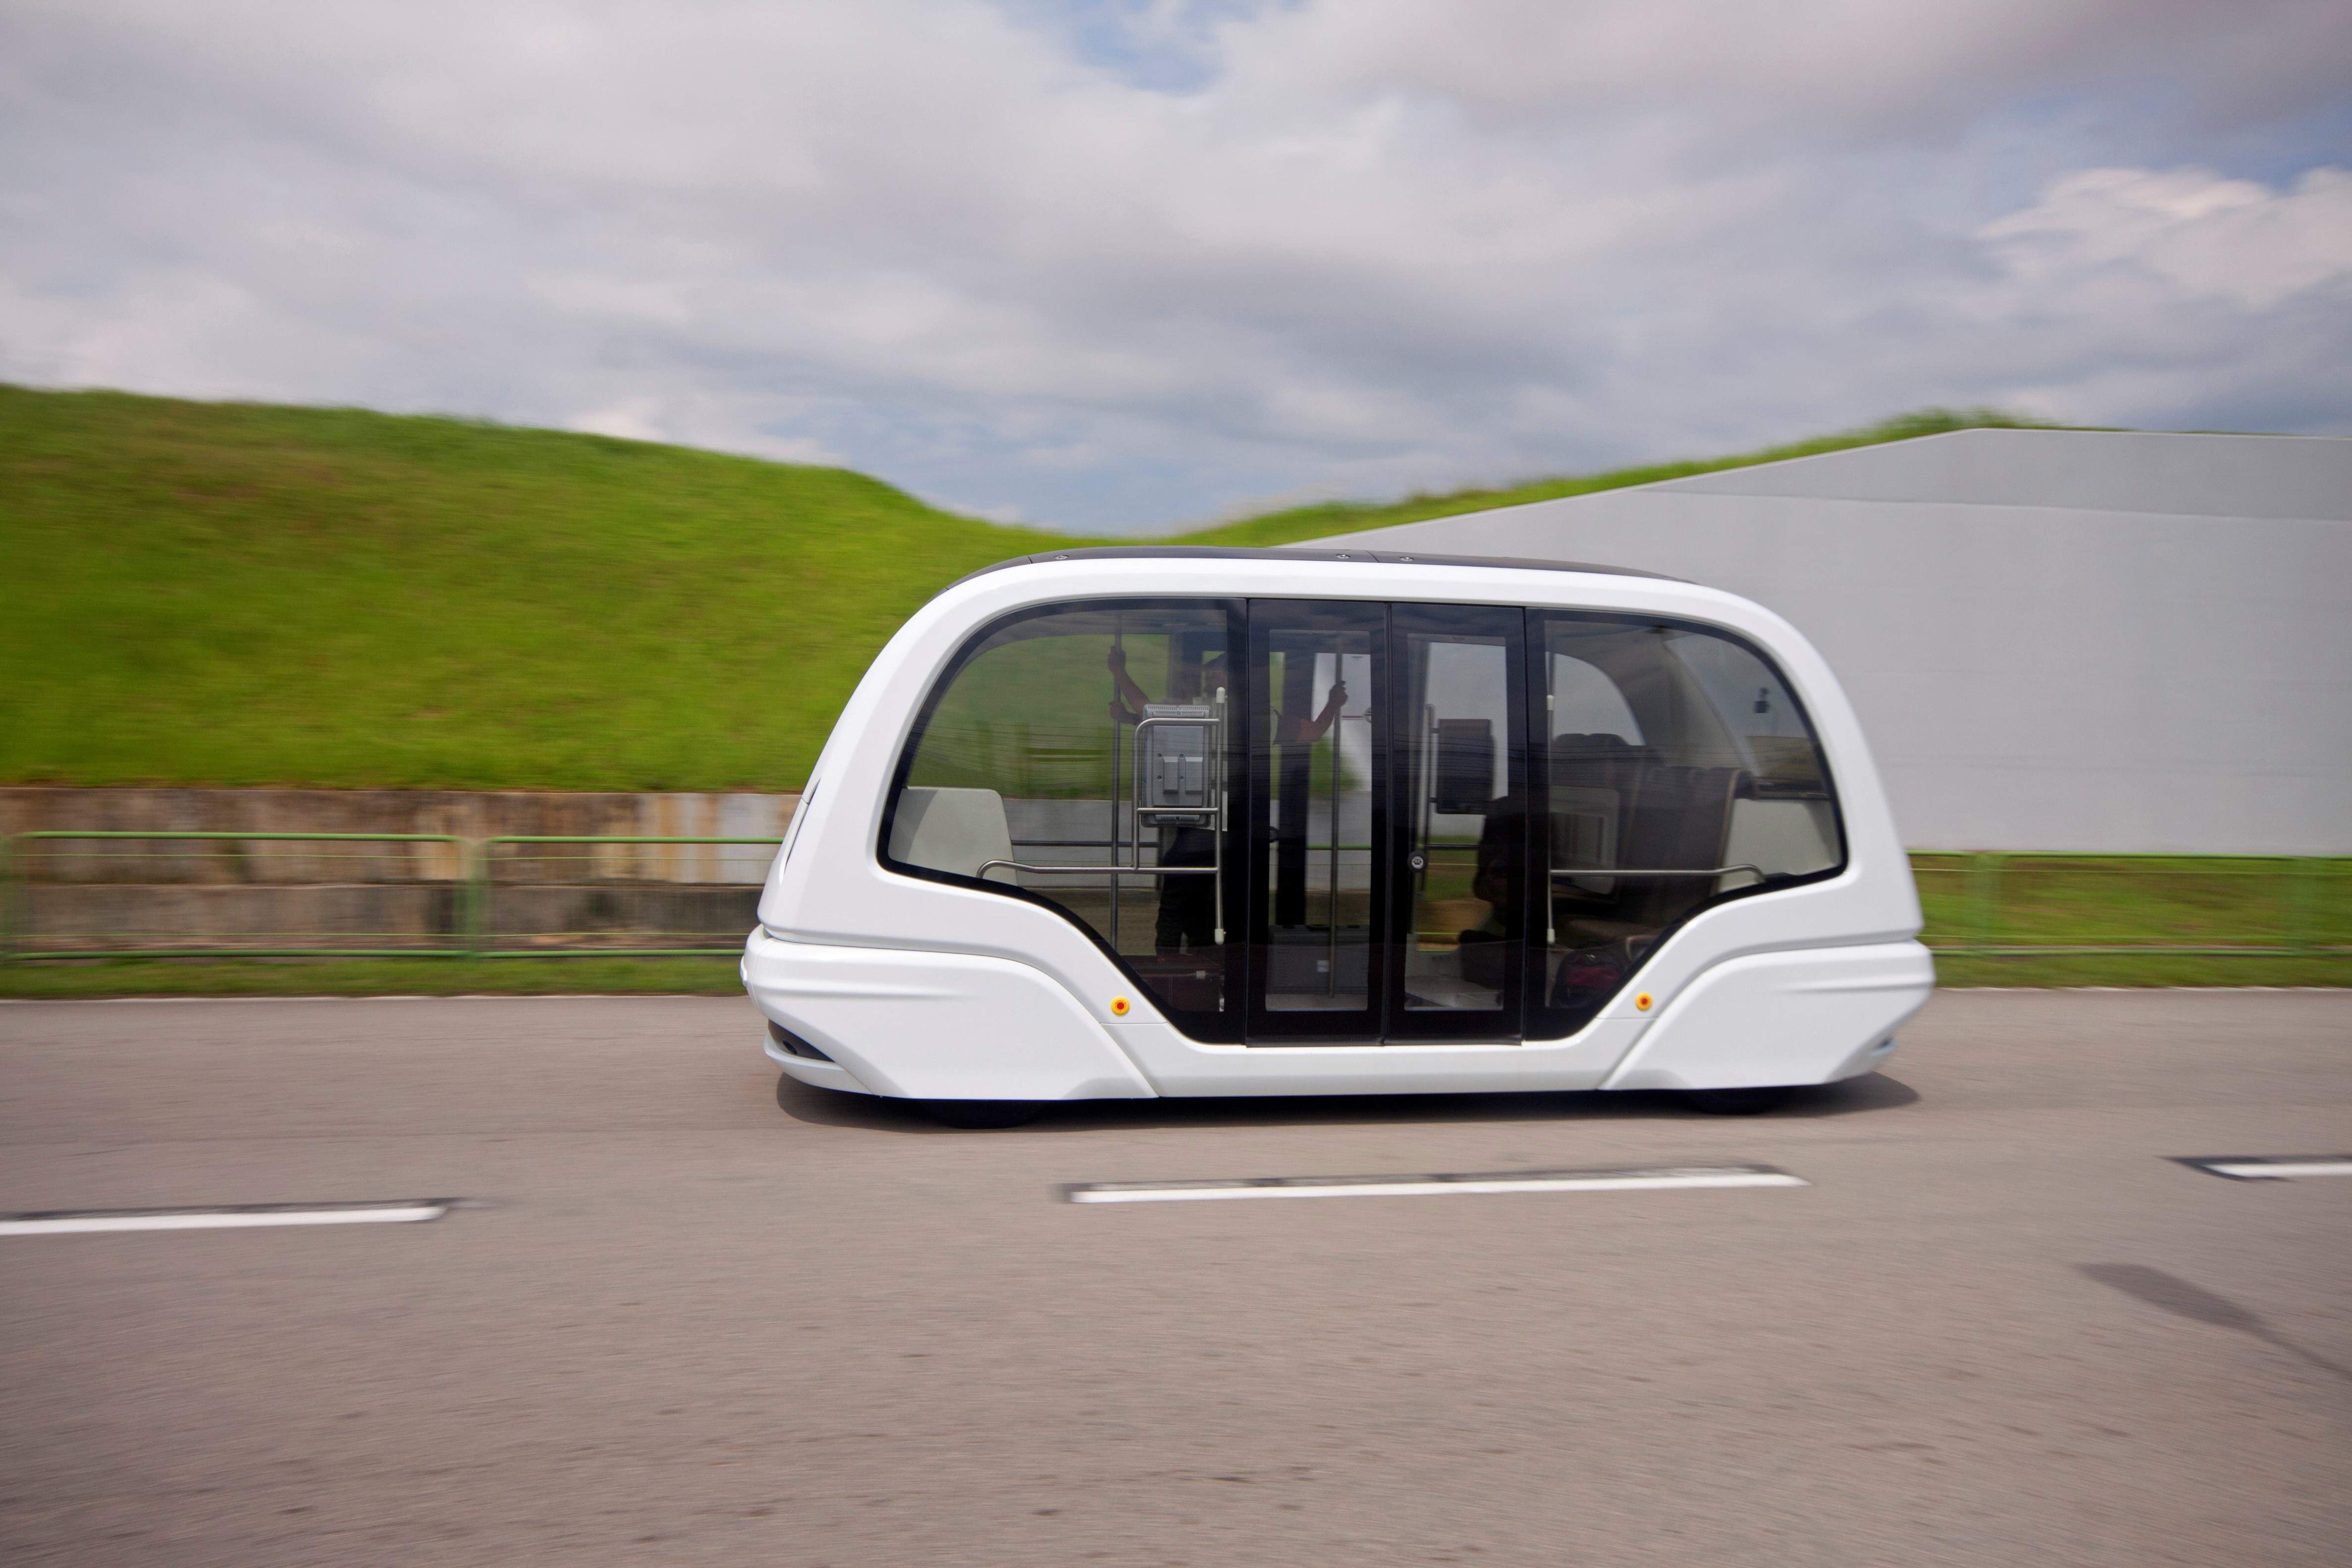 Self-driving car. driverless car, autonomous vehicle